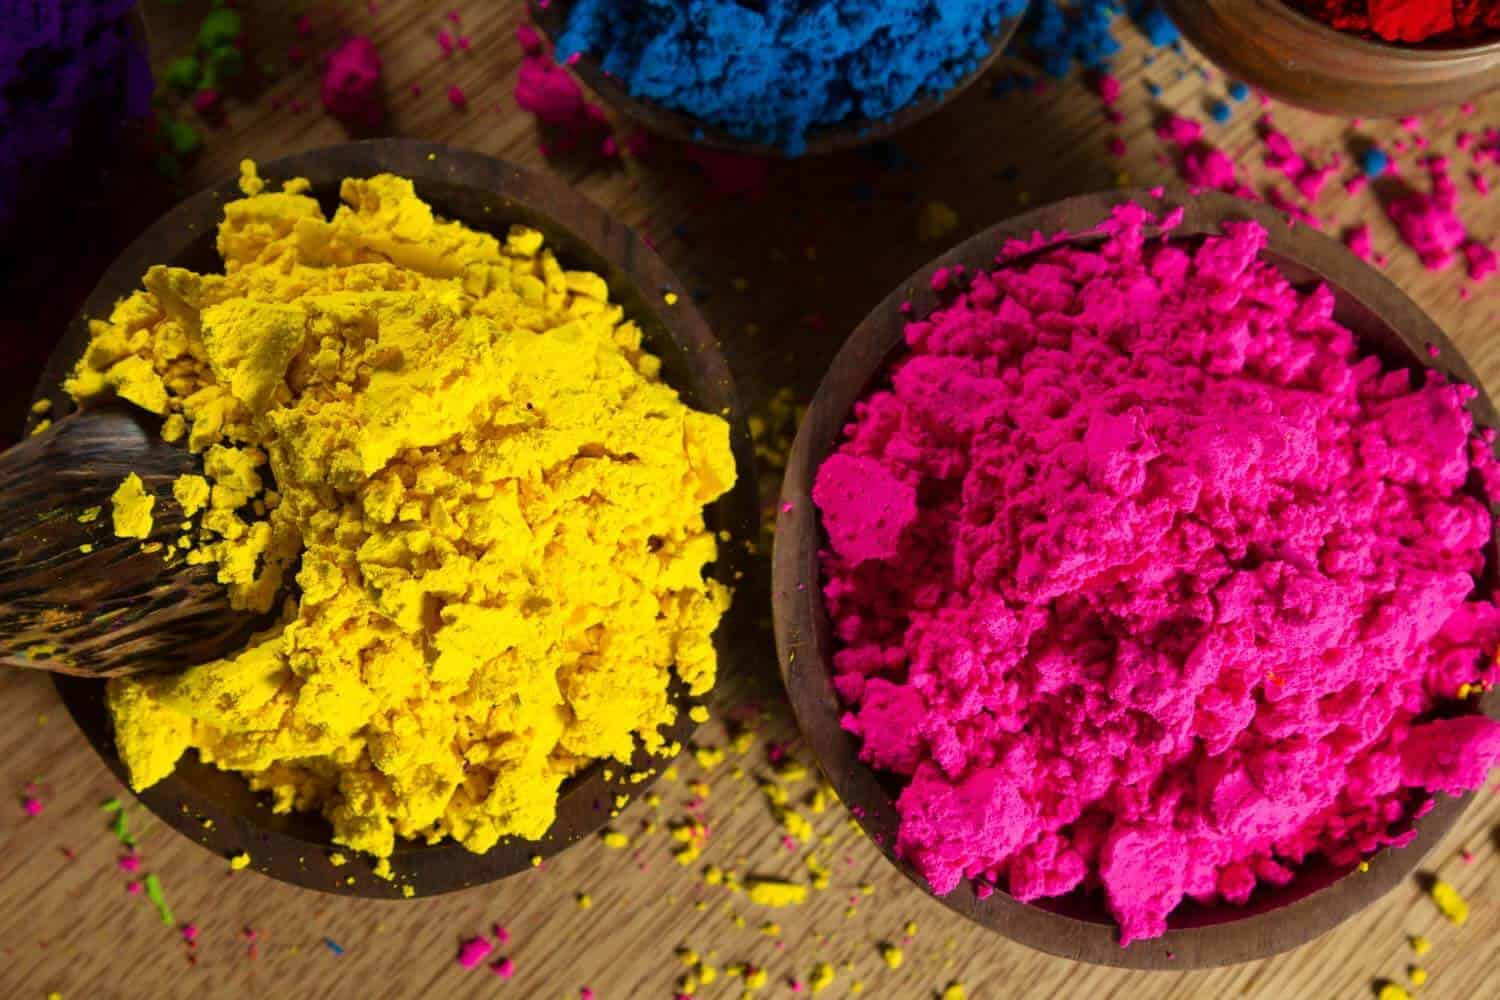 Indian pigments in magenta and yellow, representing colours in the CMYK colour system.